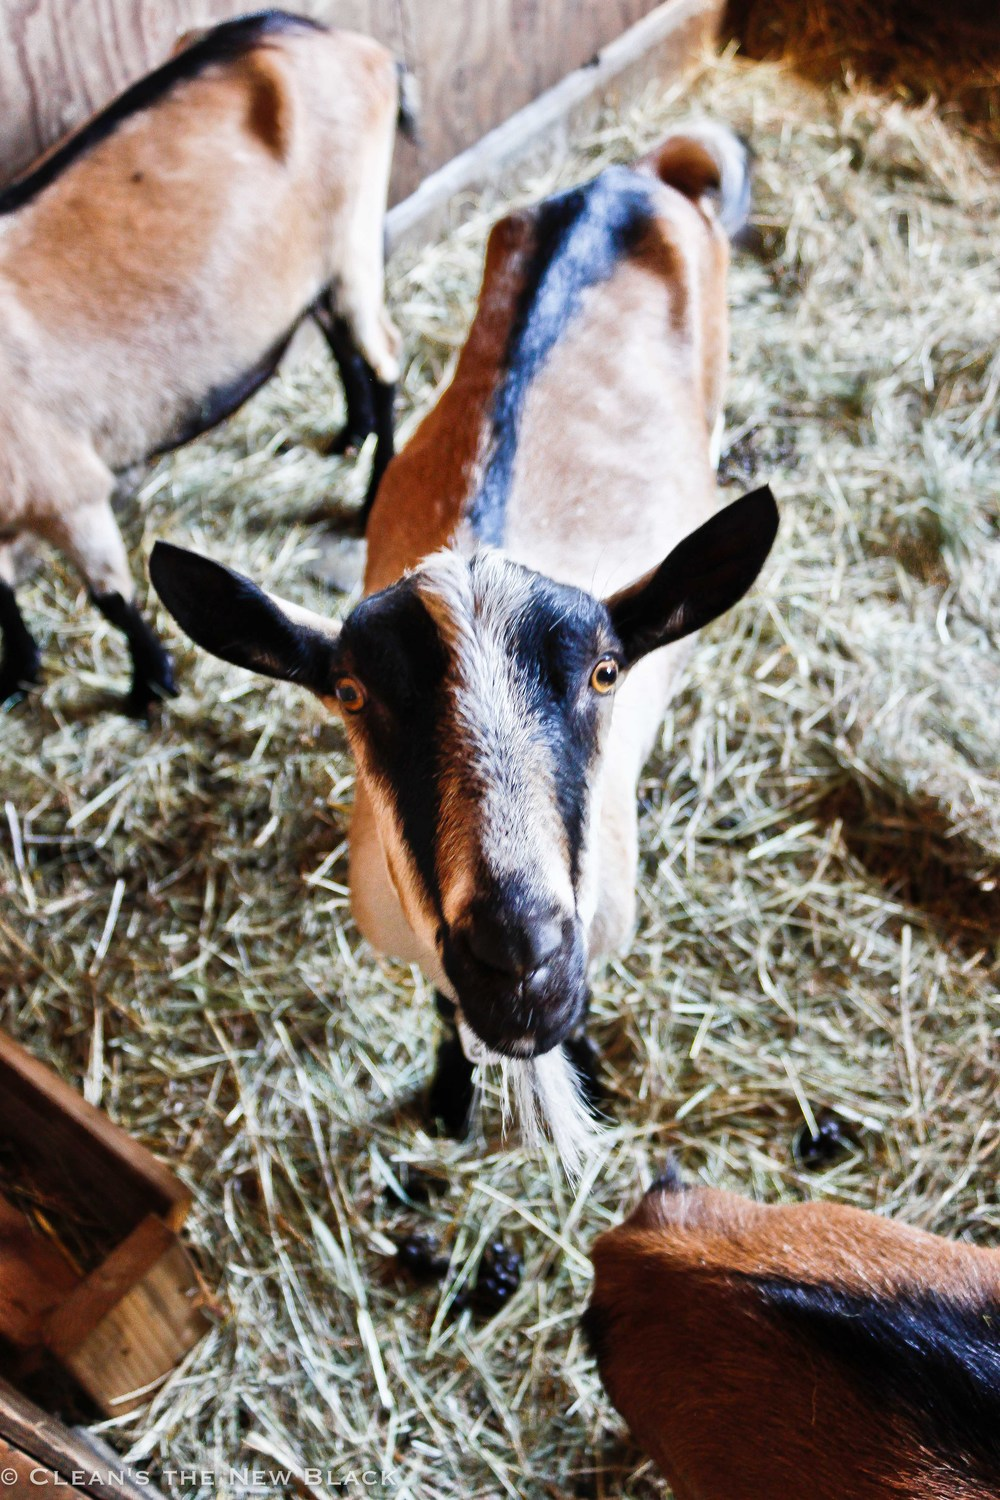 A Goat from Skamokawa Farmstead Creamery. Taken By Teddy Townsend